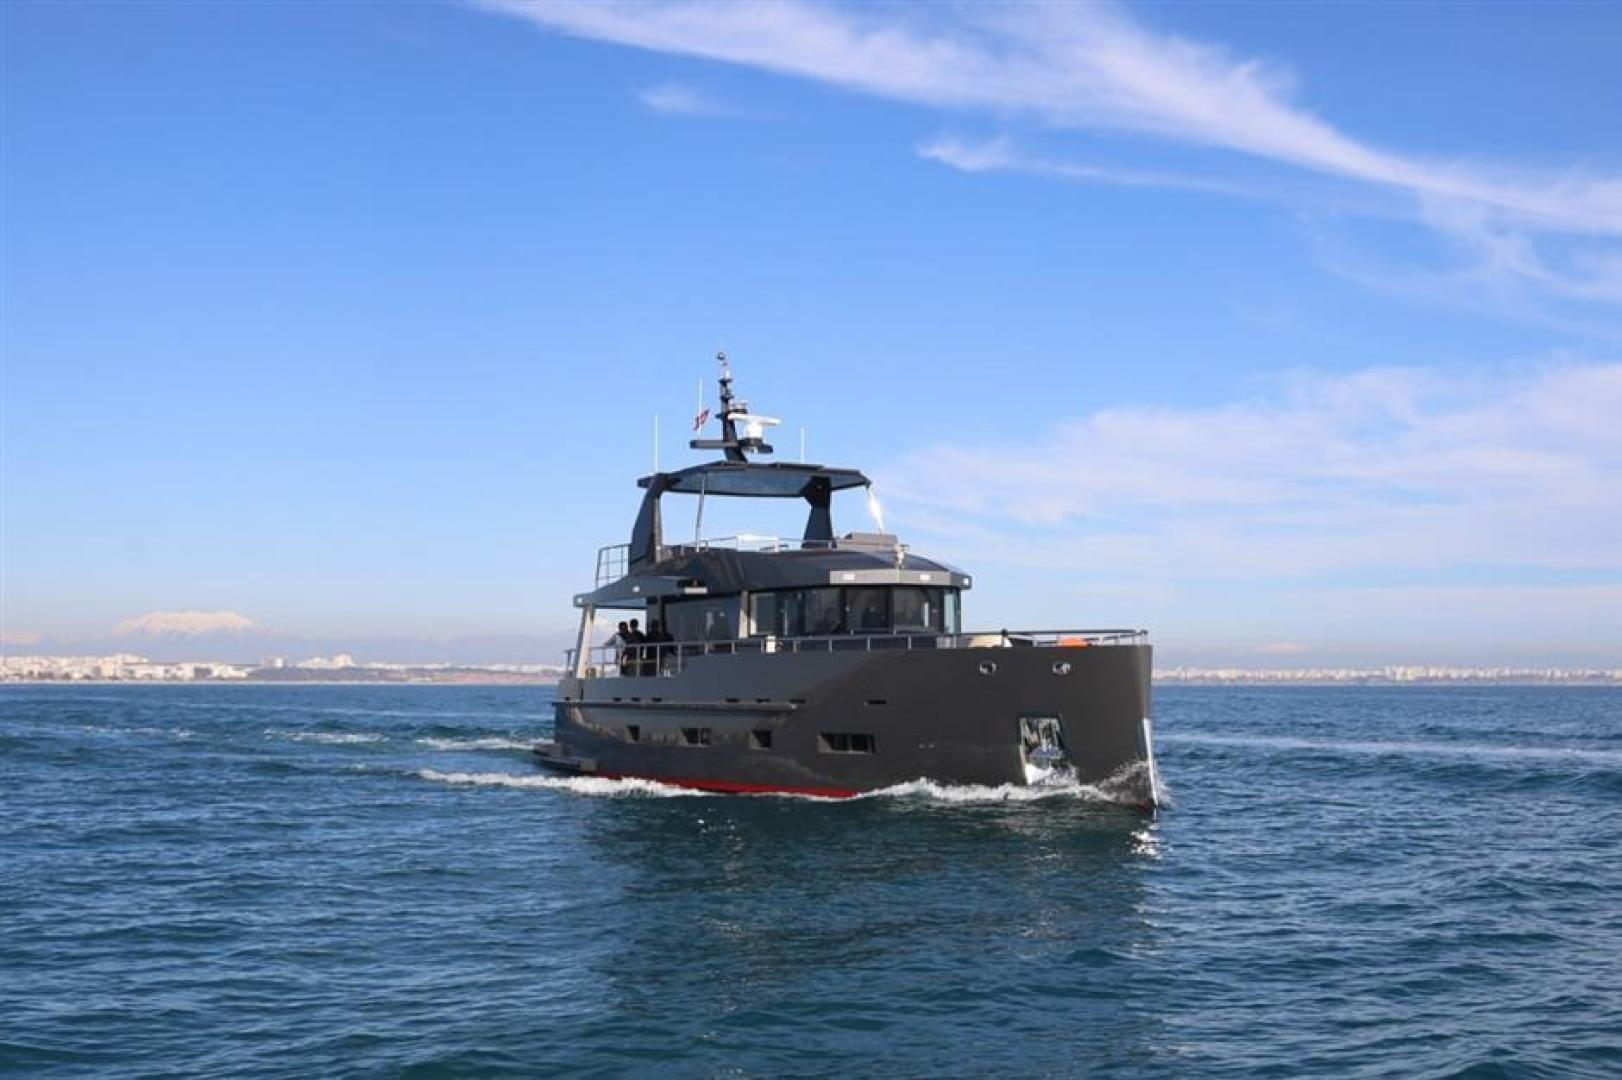 Bering-Expedition Yacht 2019-Expedition Yacht Turkey-1405157   Thumbnail